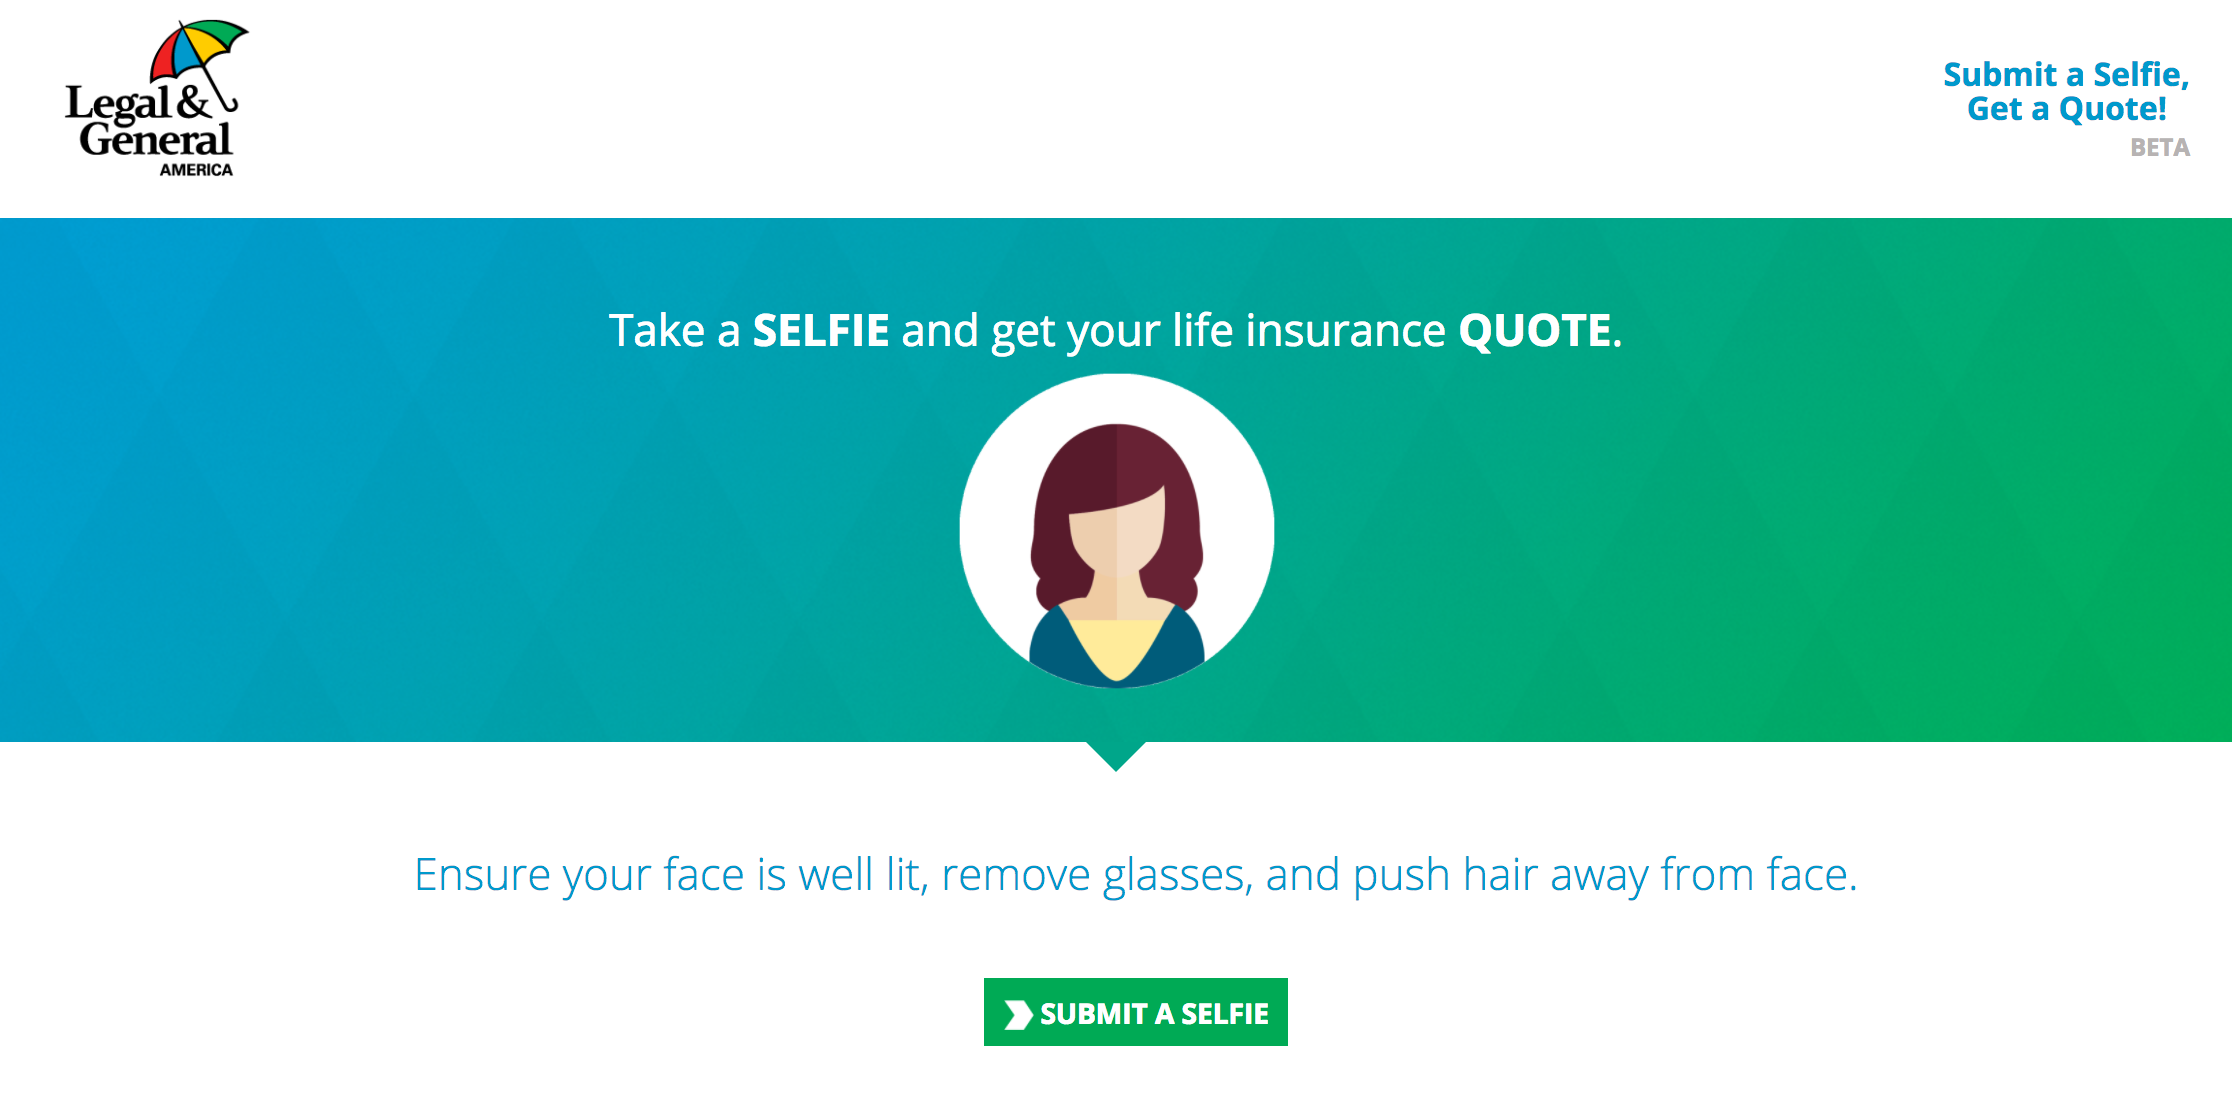 Life Quotes Life Insurance Take A Selfie & Get A Life Insurance Quote